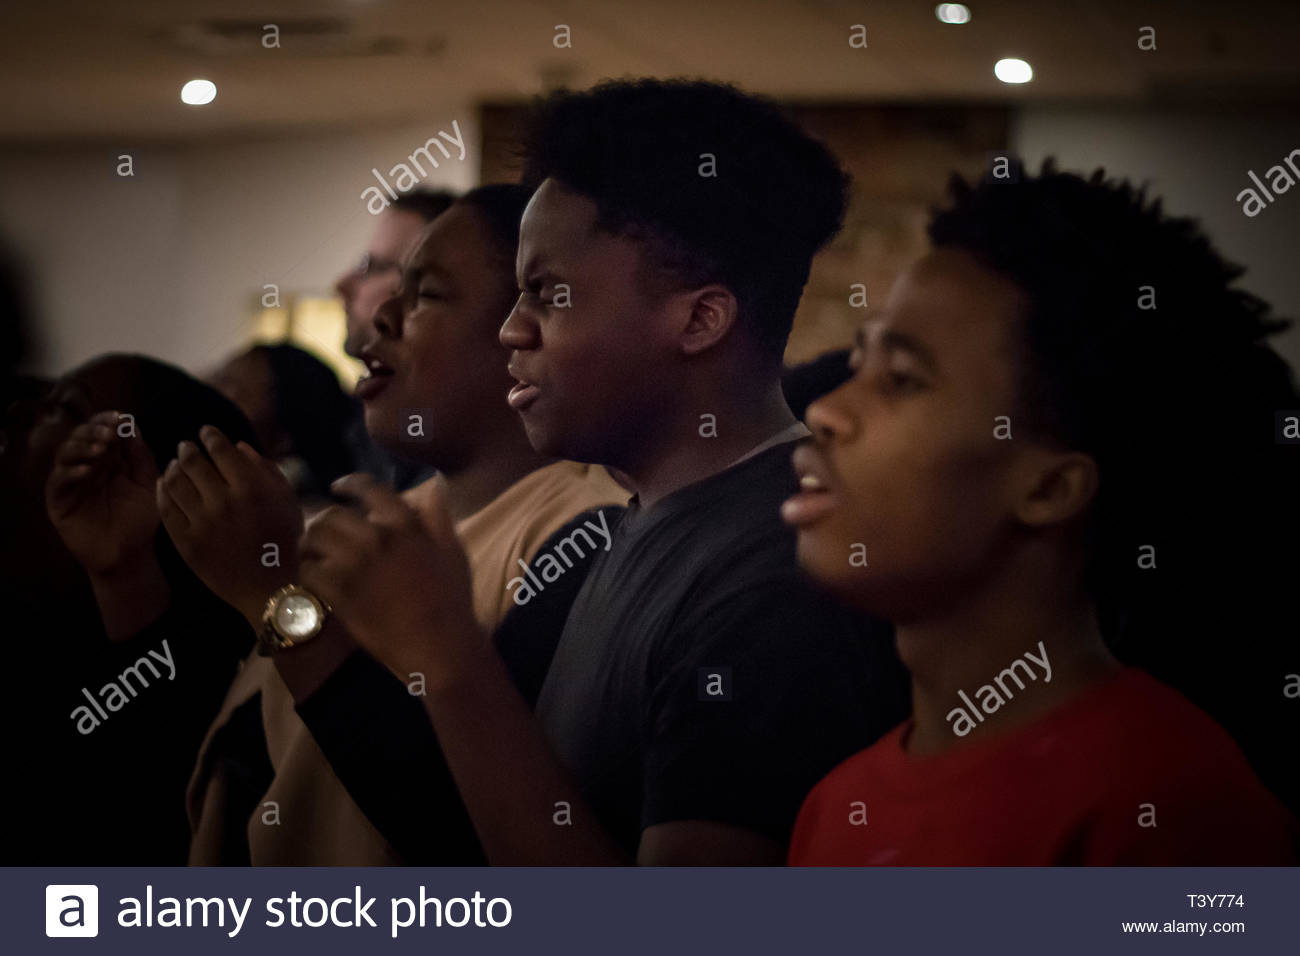 January 21, 2018 - Montreal, Quebec, Canada: A young man grimaces with fervor at a meeting of prayer and worship of God at Evangelist Church. (David H - Stock Image